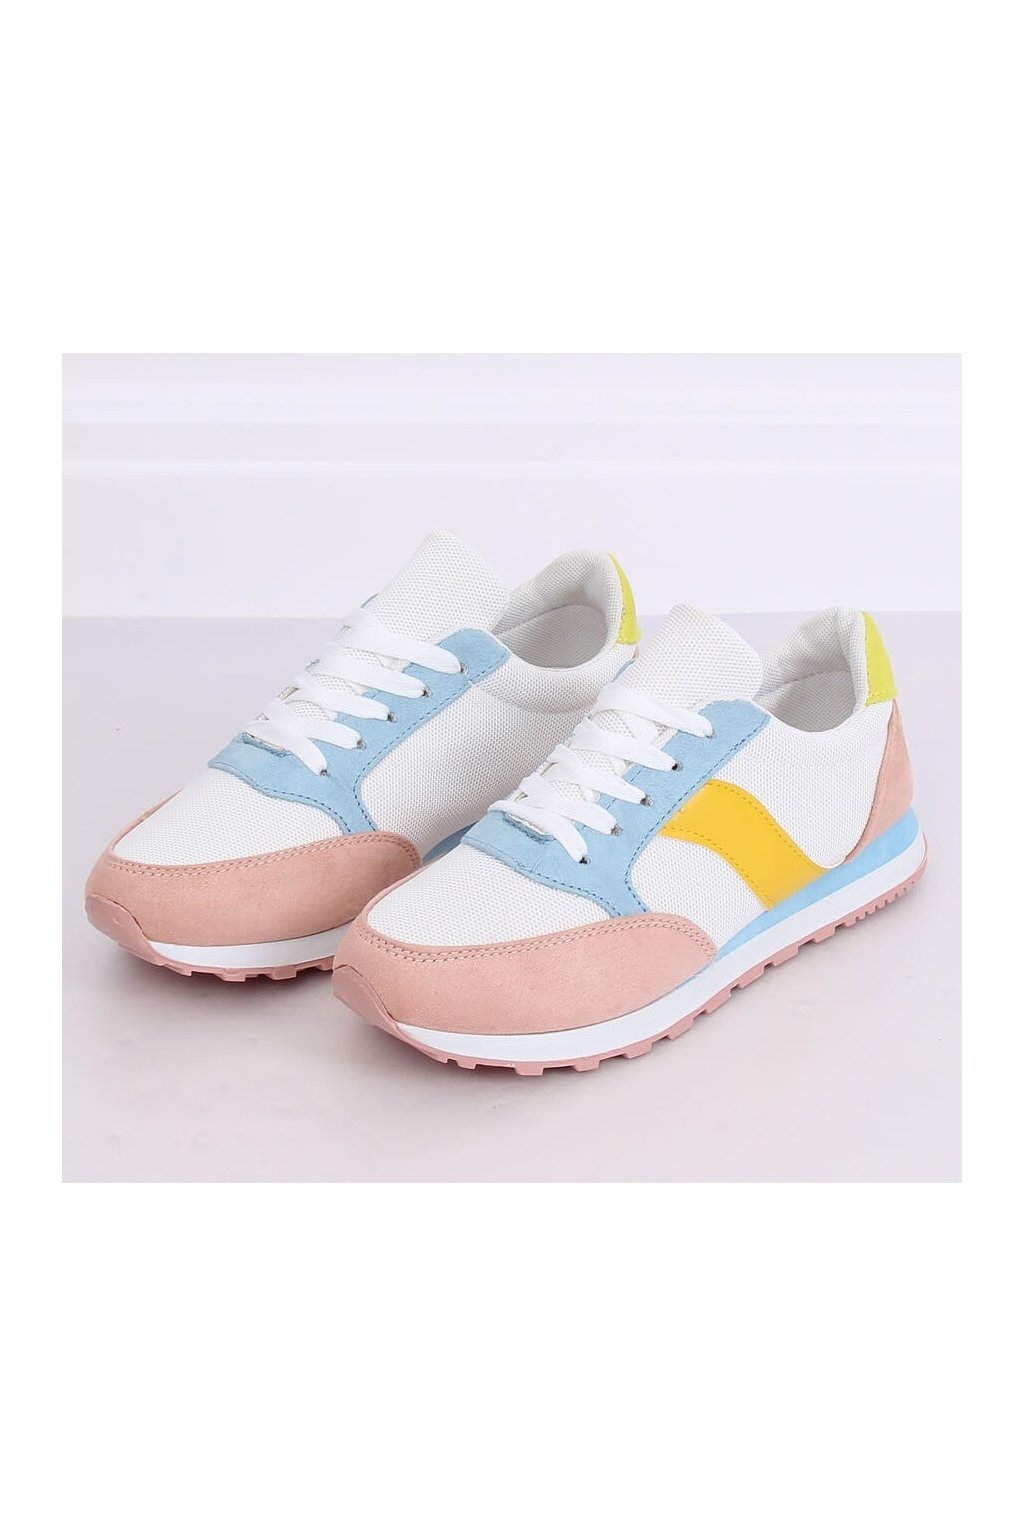 bl191p white multicolor sports shoes blue pink multicolored yellow 4 2000x2000